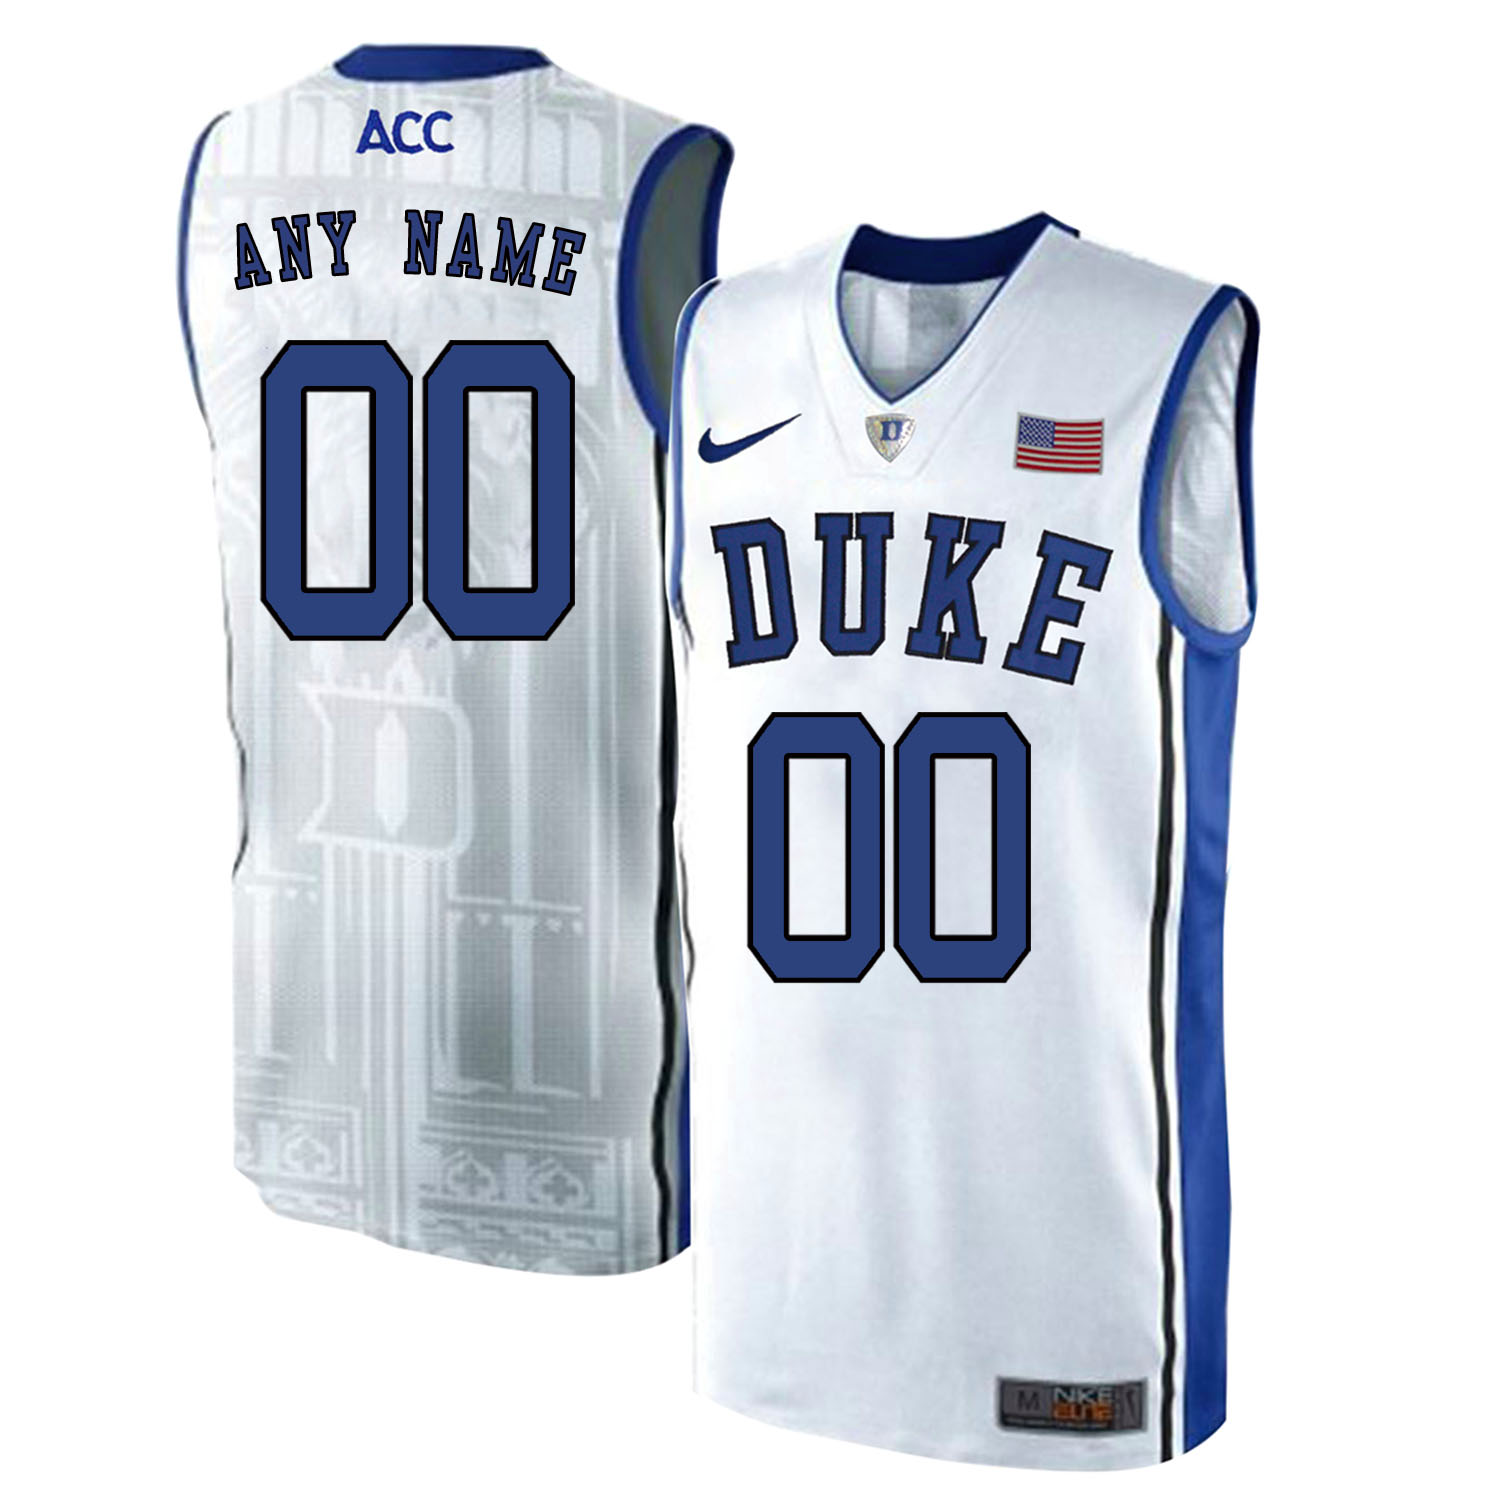 Duke Blue Devils Men's Customized White Elite Nike College Basketball Jersey